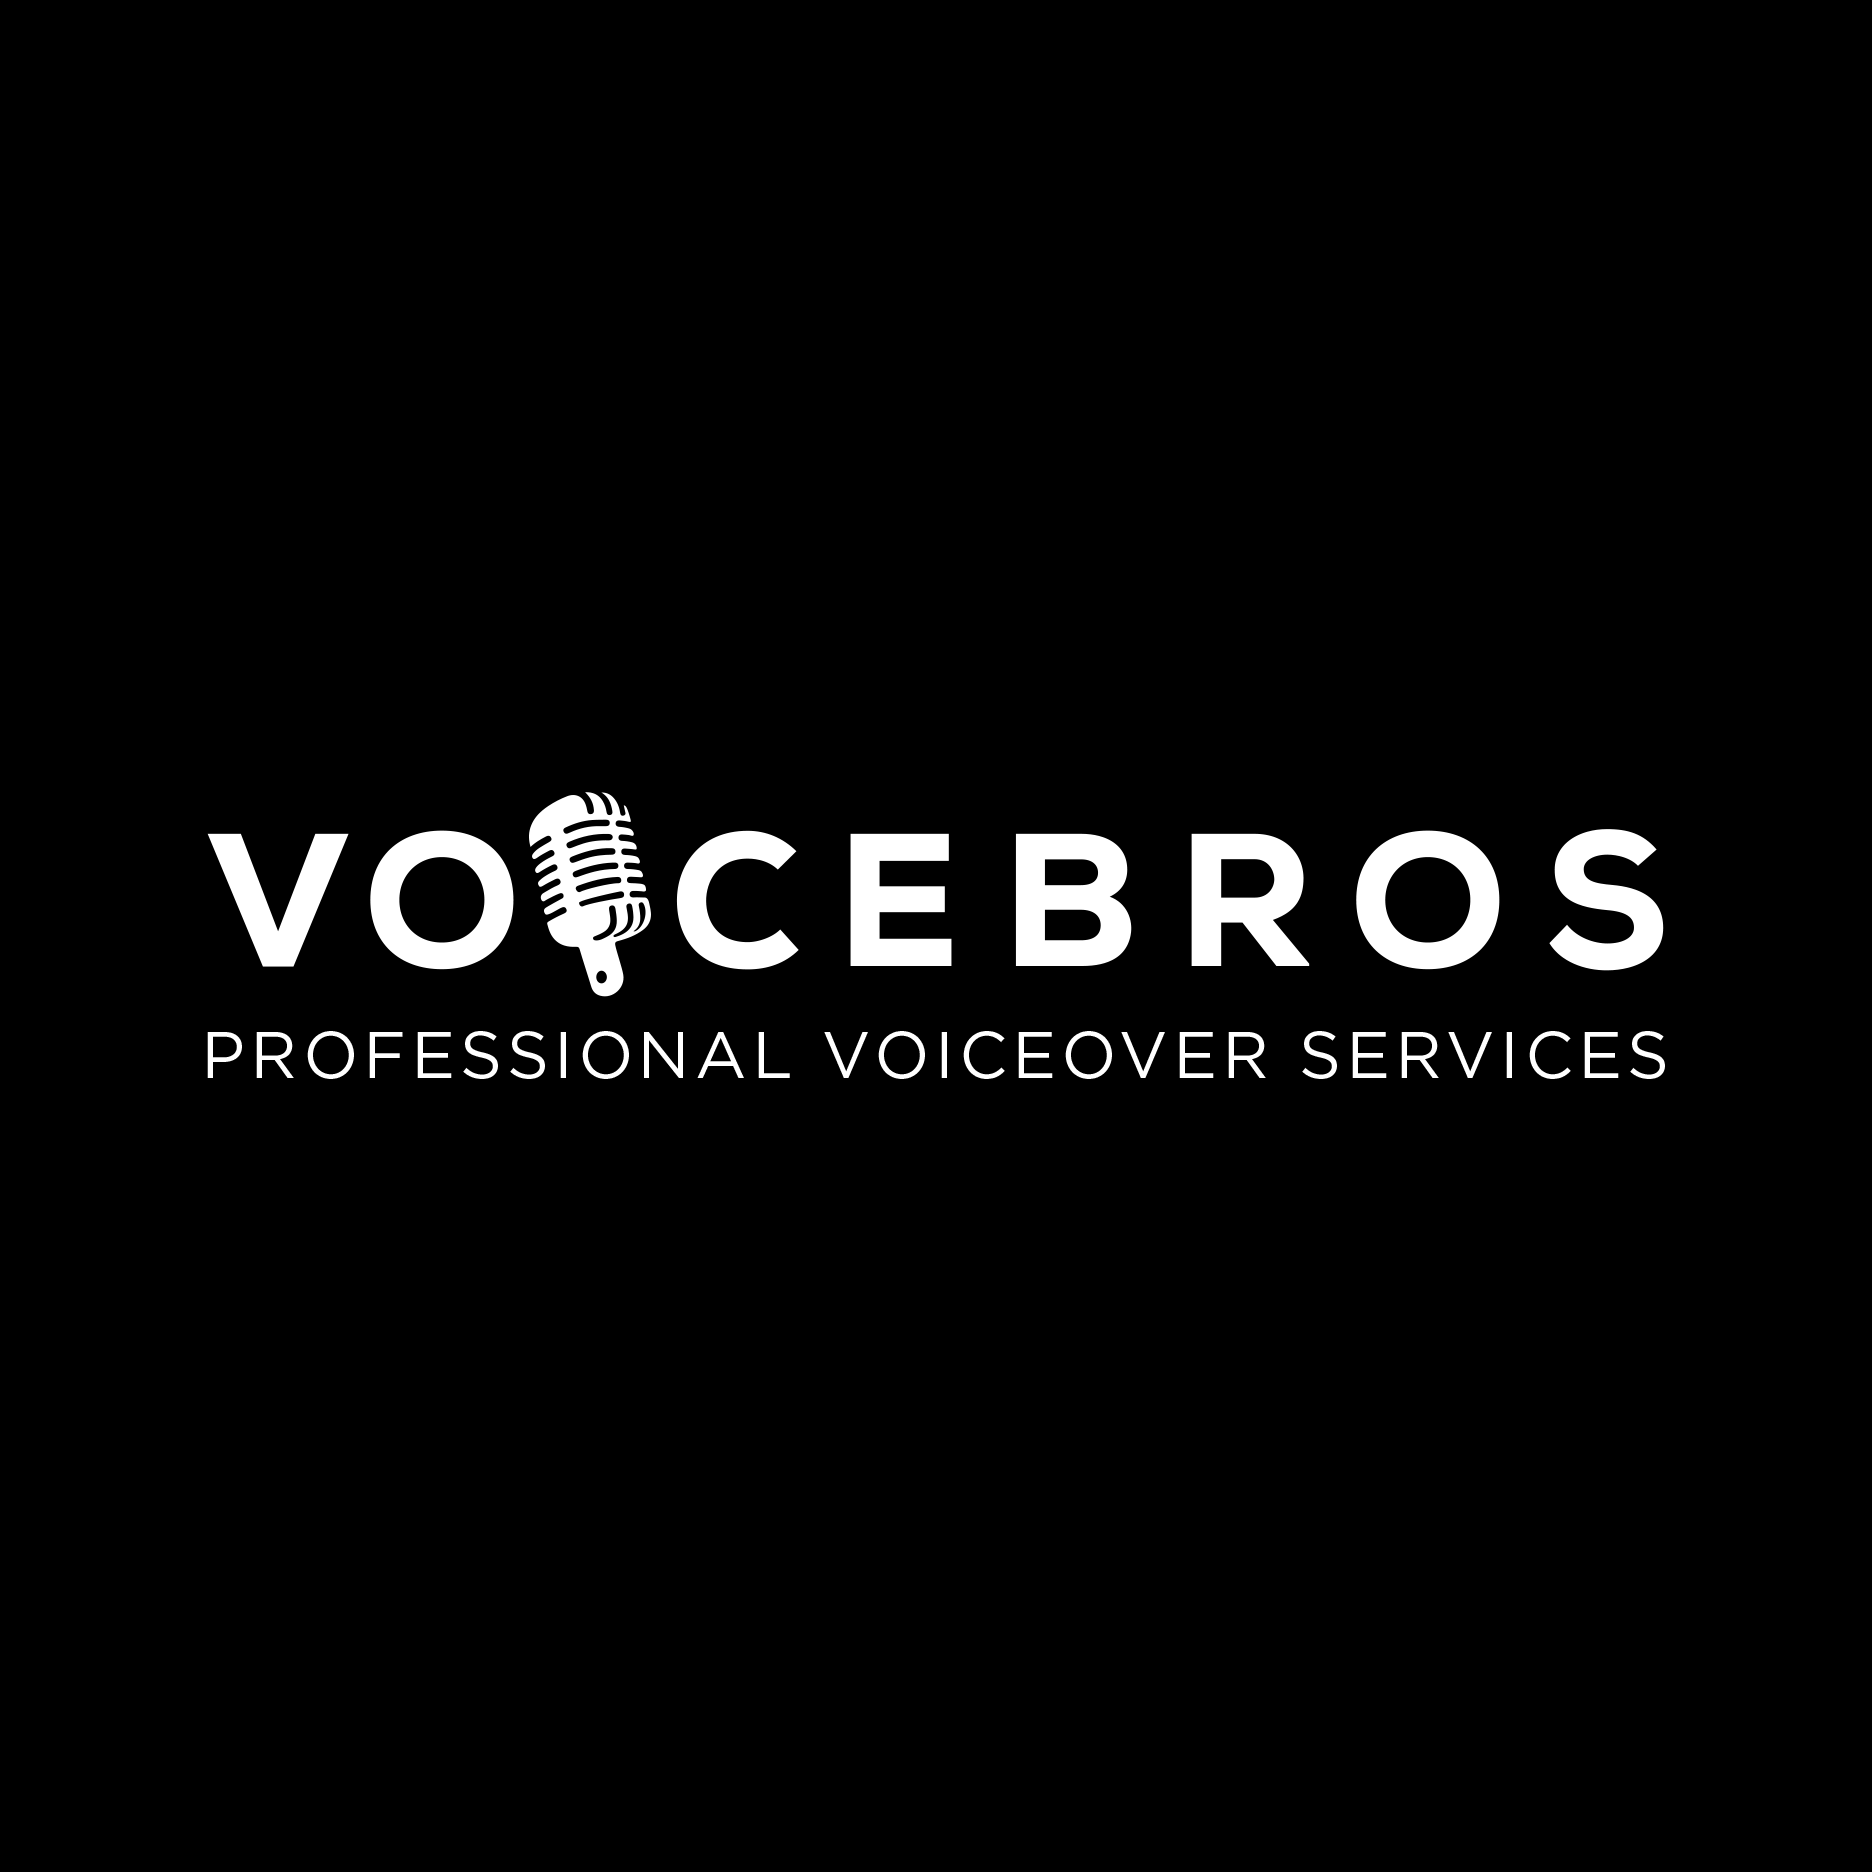 Meghan L. is a voice over actor